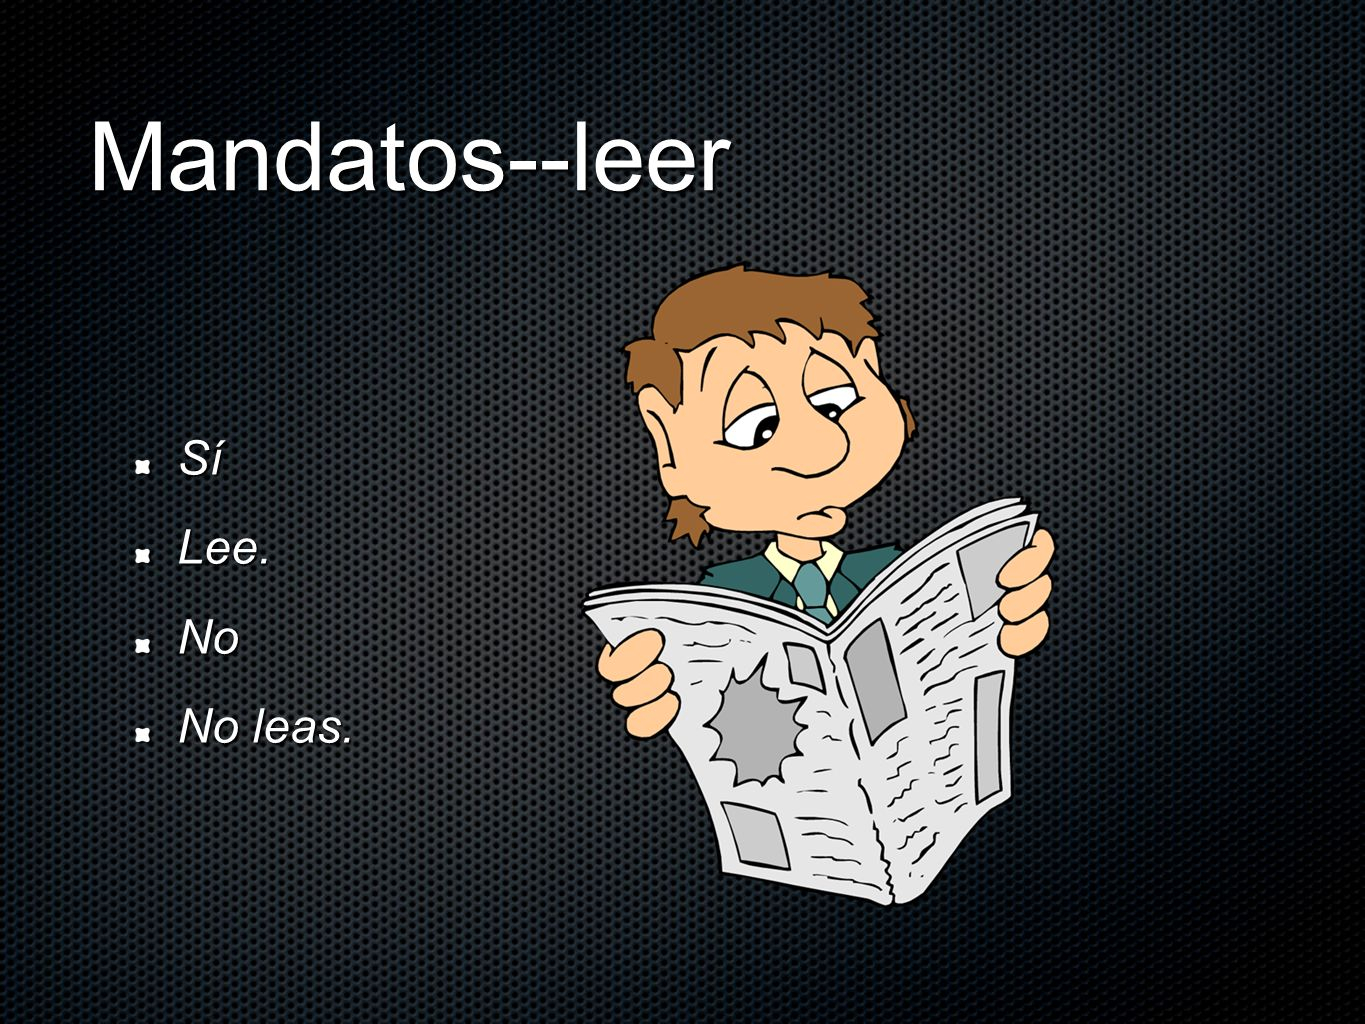 Mandatos--leer Sí Lee. No No leas.